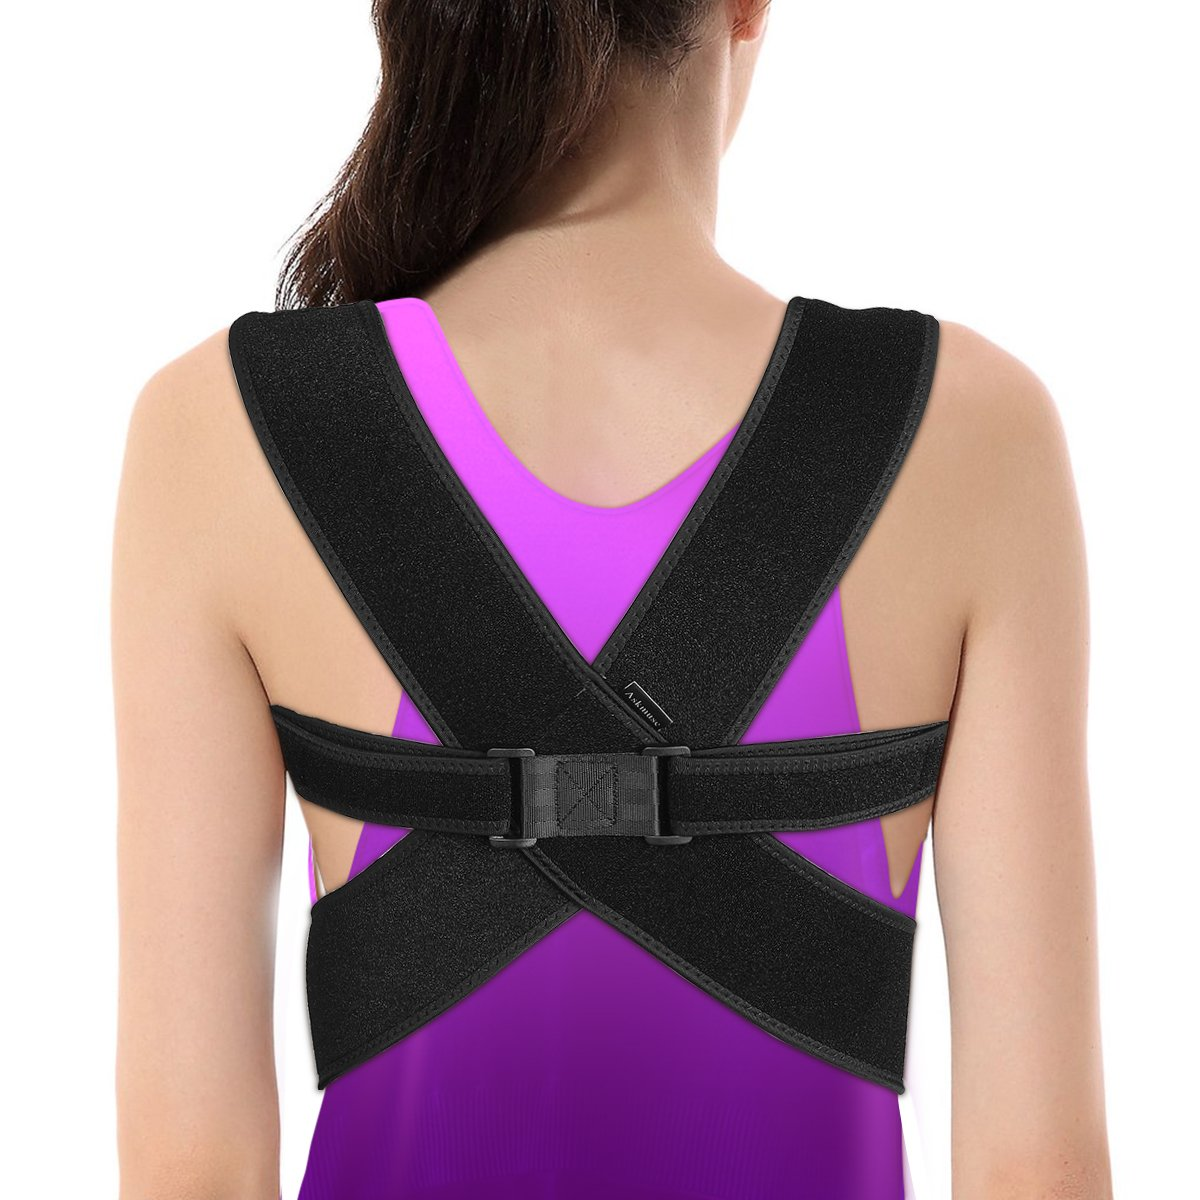 Posture Corrector - Fully Adjustable Breathable Clavicle Chest Back Support Brace which Improves Posture & Back Pain Relief - Perfect for Women & Men